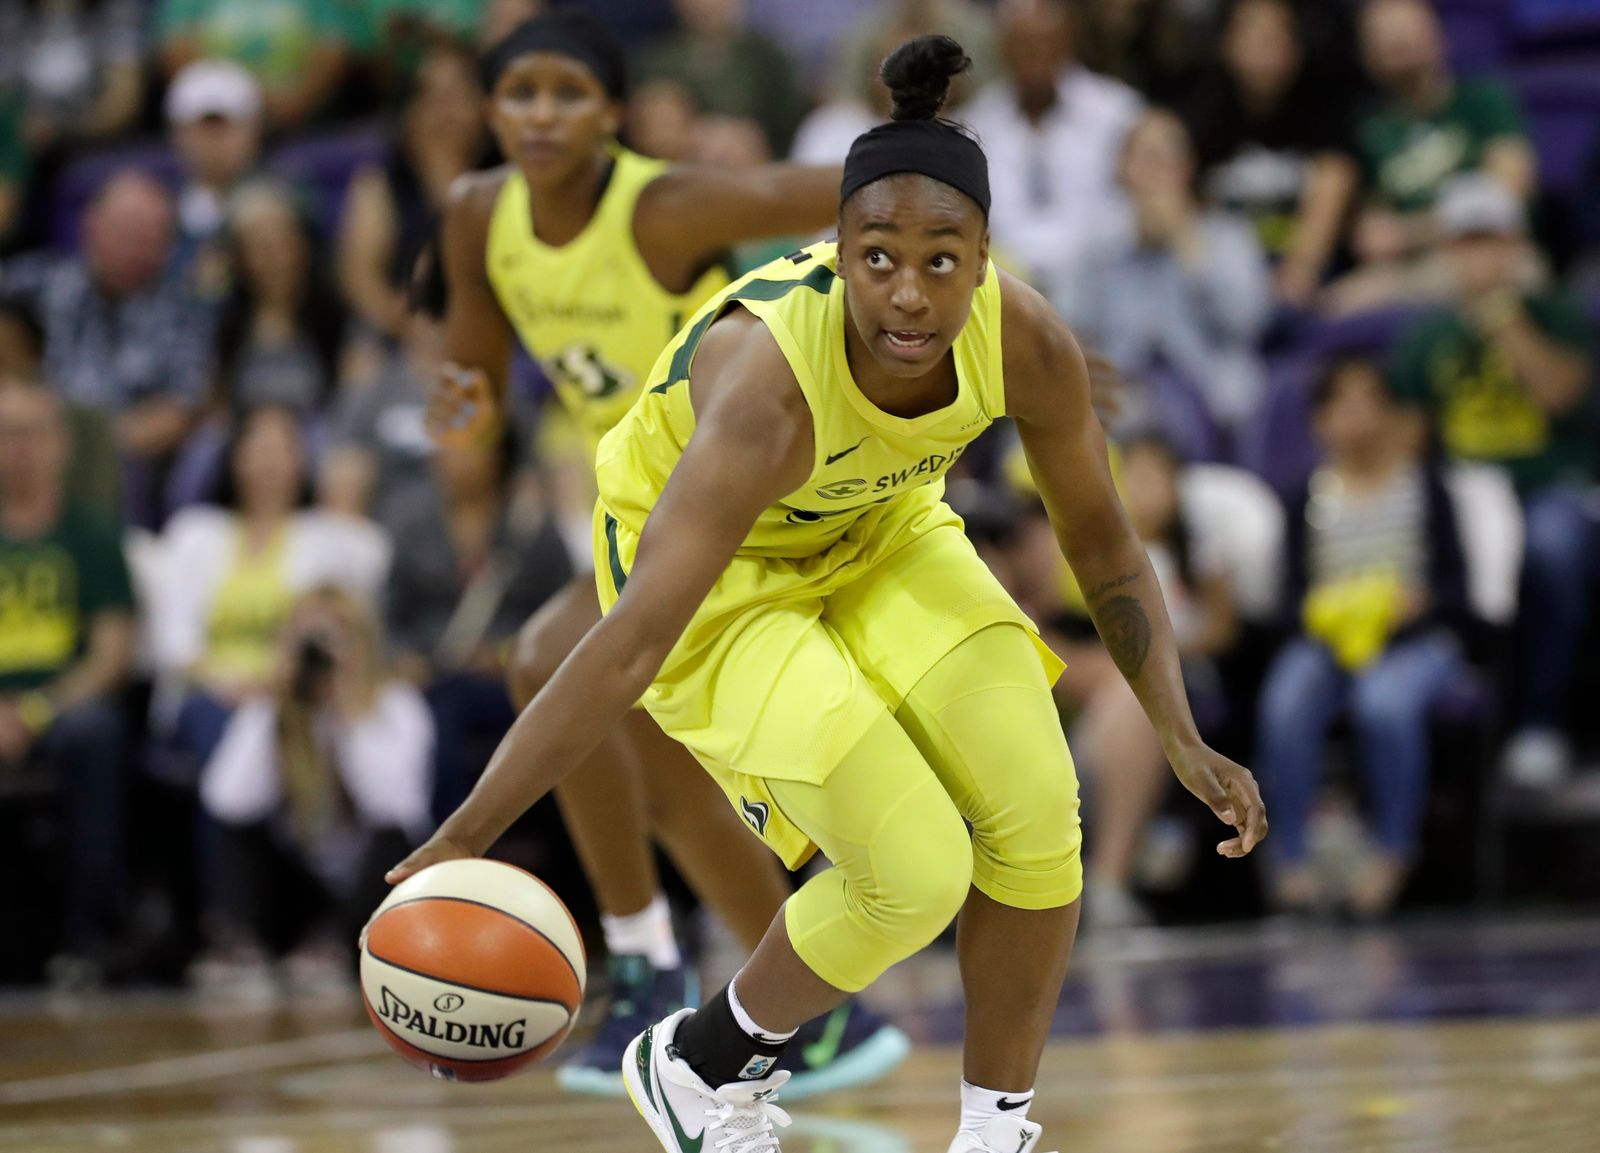 Seattle Storm's Jewell Loyd brings the ball up against the Las Vegas Aces during the first half of a WNBA basketball game Friday, July 19, 2019, in Seattle. (AP Photo/Elaine Thompson)